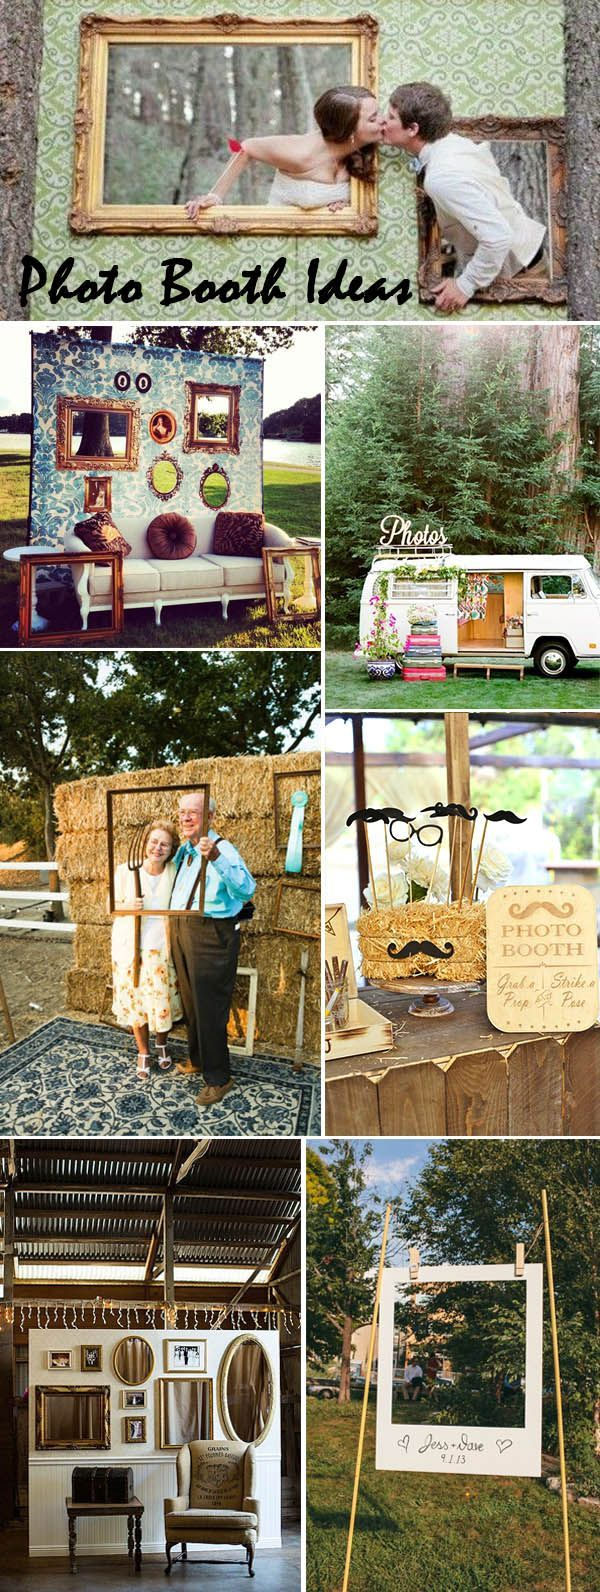 wedding photo booth ideas to get all your guests happy. Black Bedroom Furniture Sets. Home Design Ideas